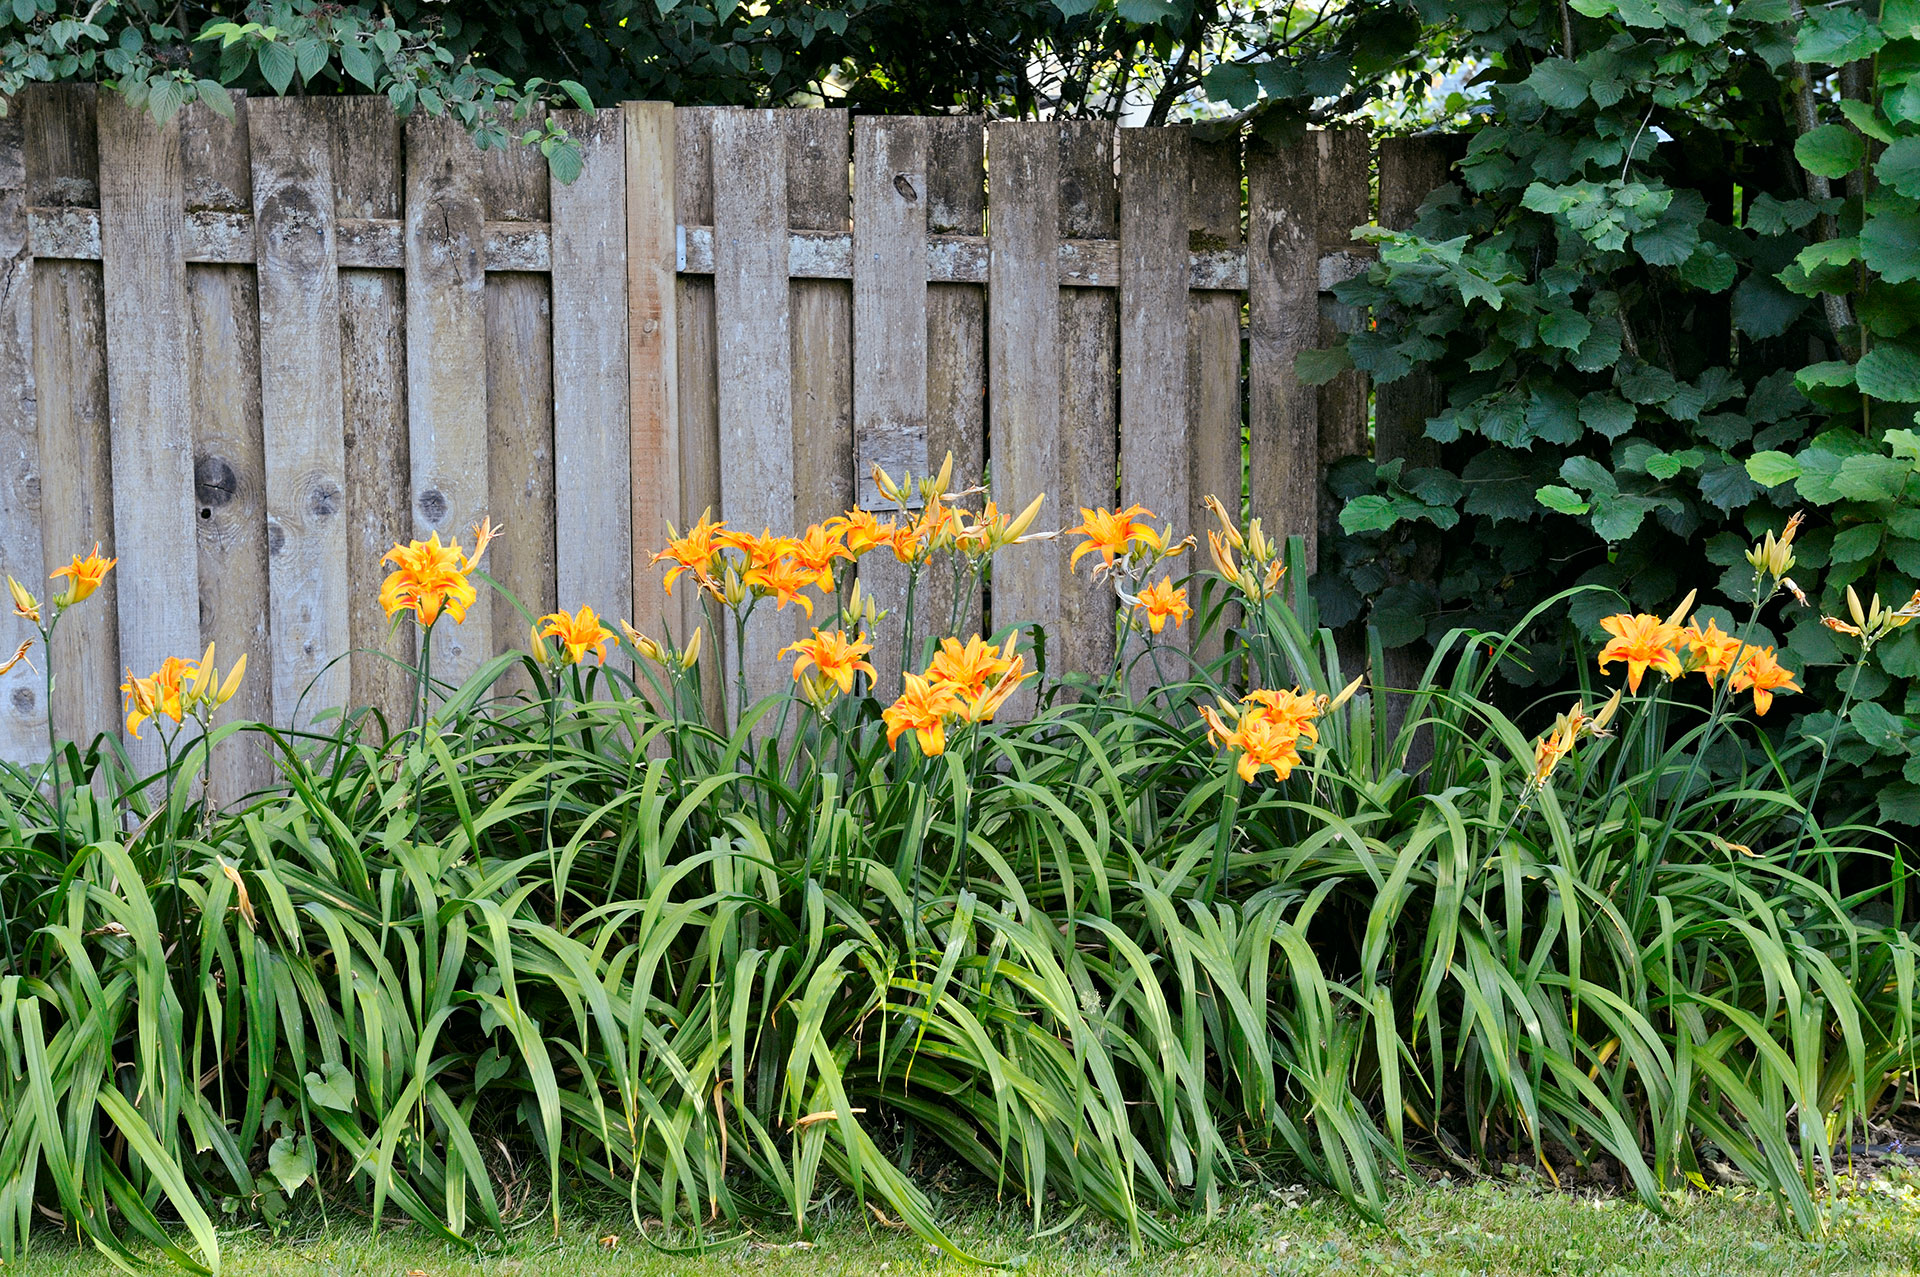 Year round plants for flower beds - Year Round Plants For Flower Beds 26